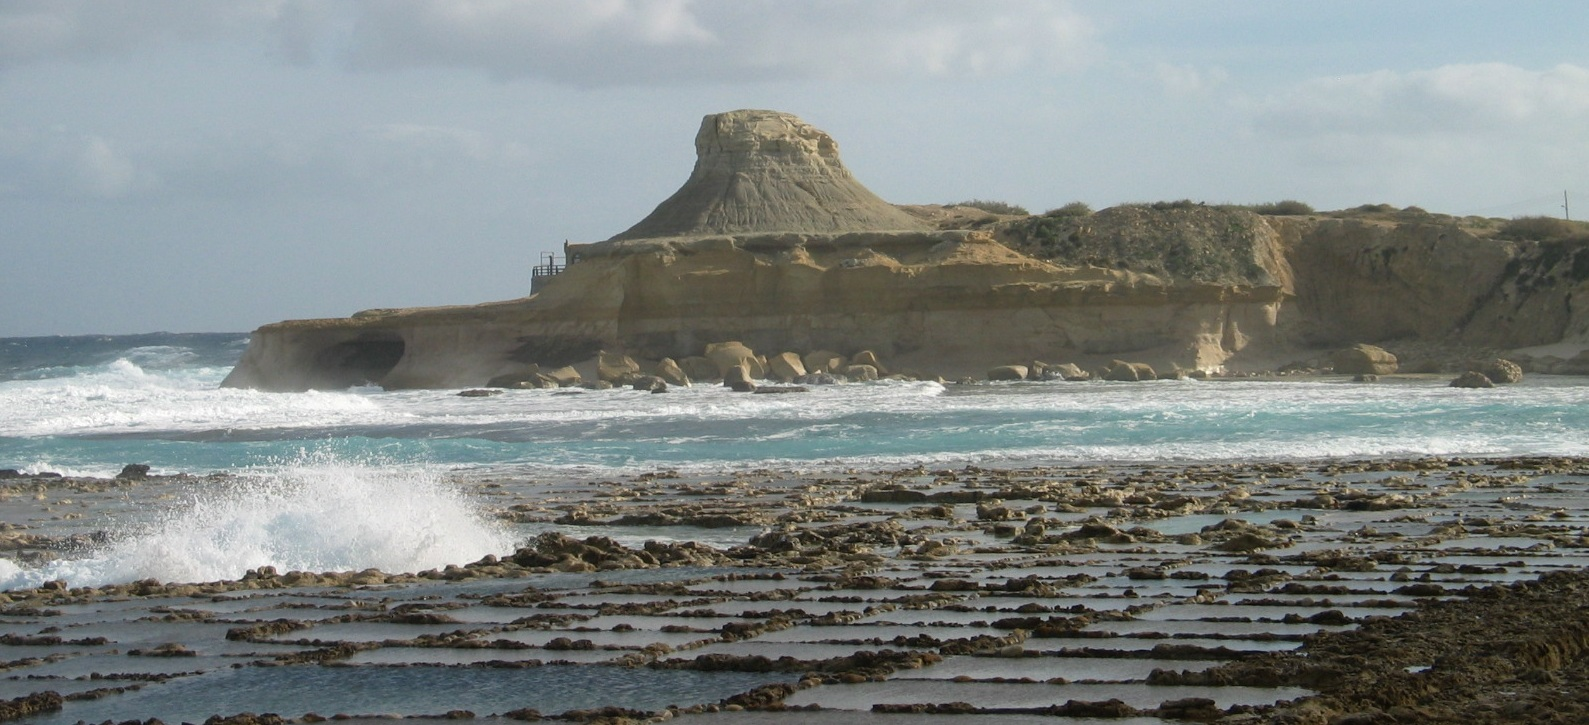 Malta, Gozo Coastal Walk, Xwejni Bay, Walkopedia